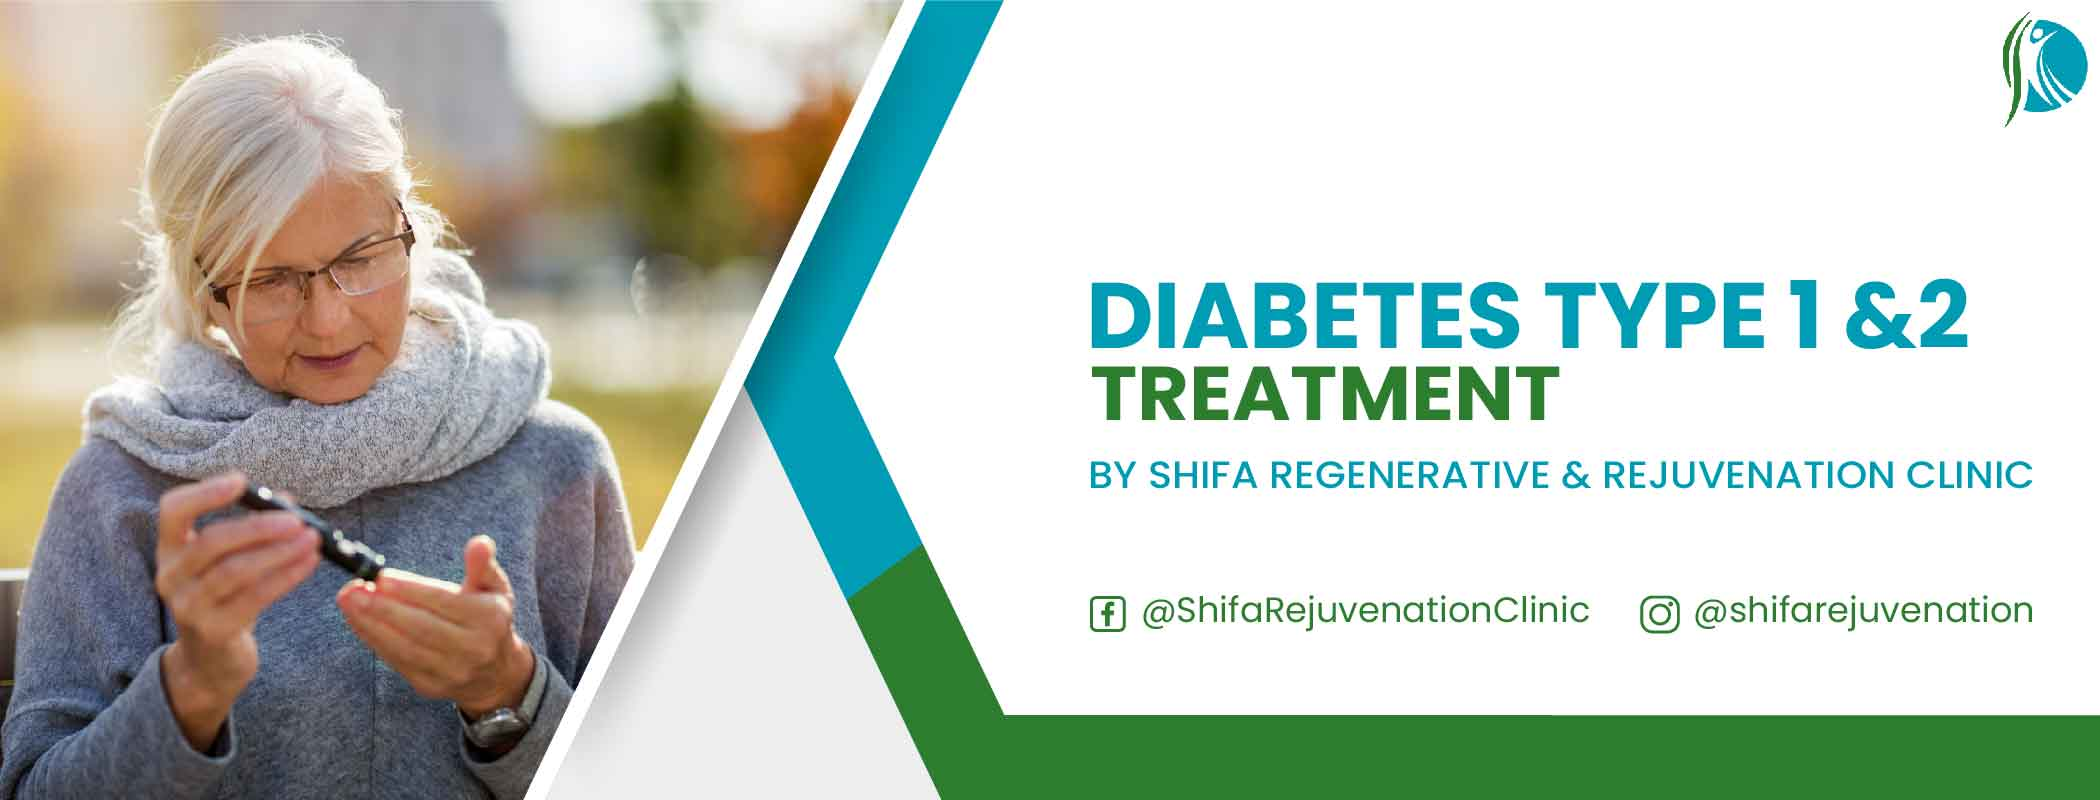 Diabetes type 1 & 2 Treatment through Stem Cell Therapy at Shifa Clinic